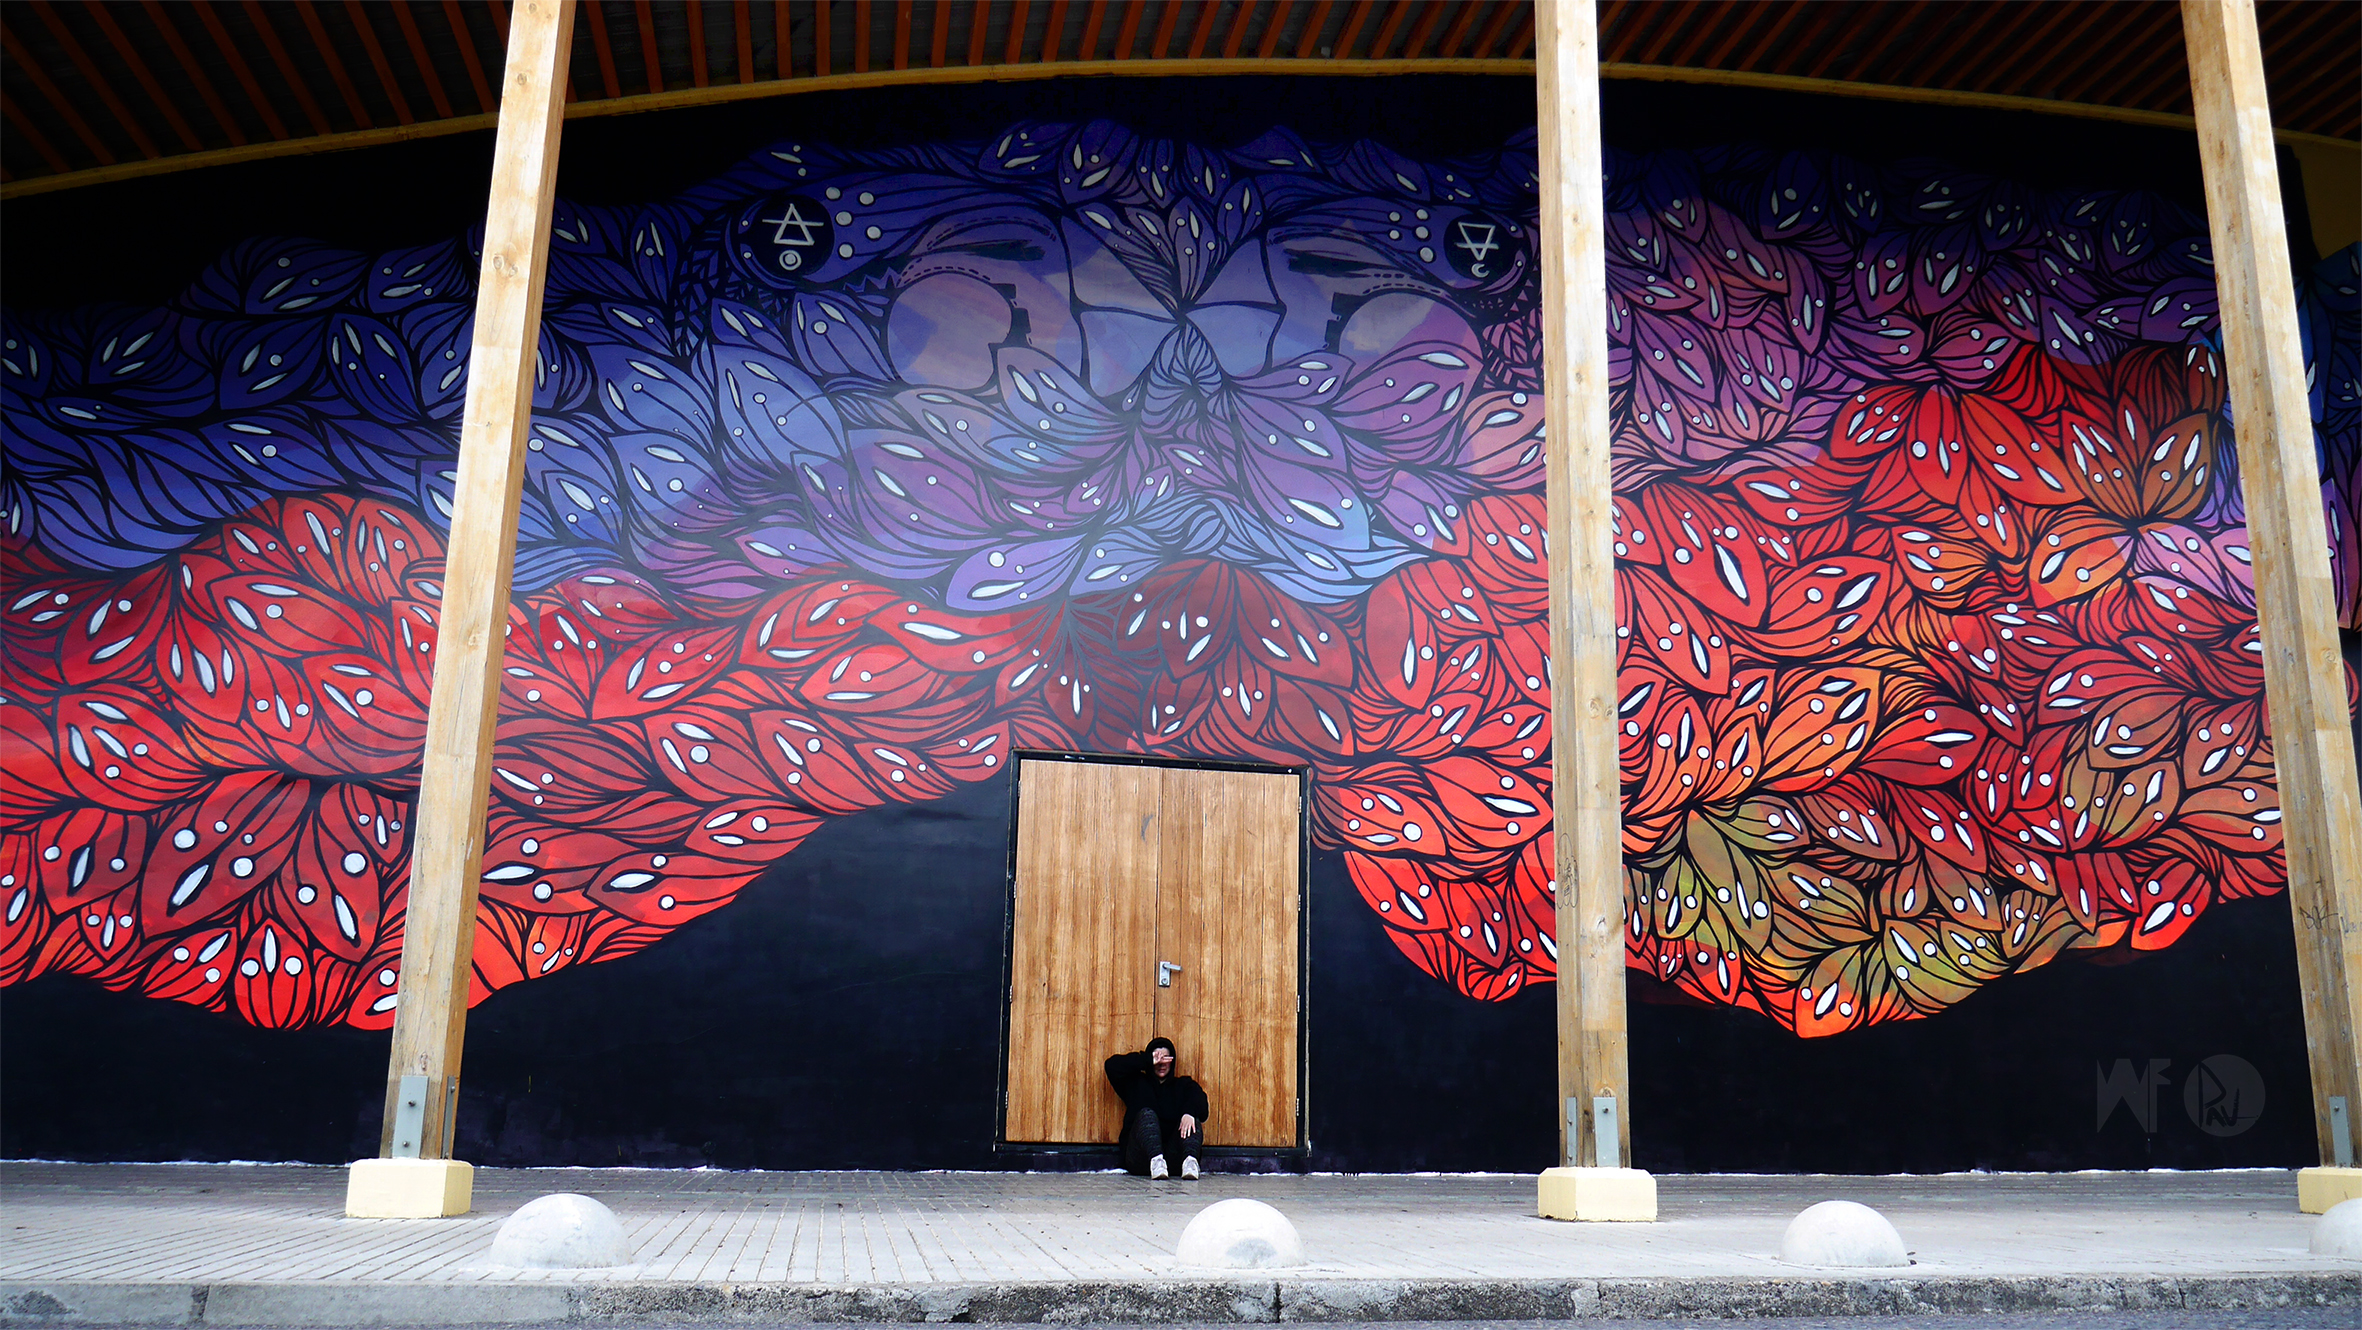 MIRRORS - Mural painted for Project Wallflowers in collaboration w/ Centro Cultural Coyhaique, Patagonia - Chile 2016